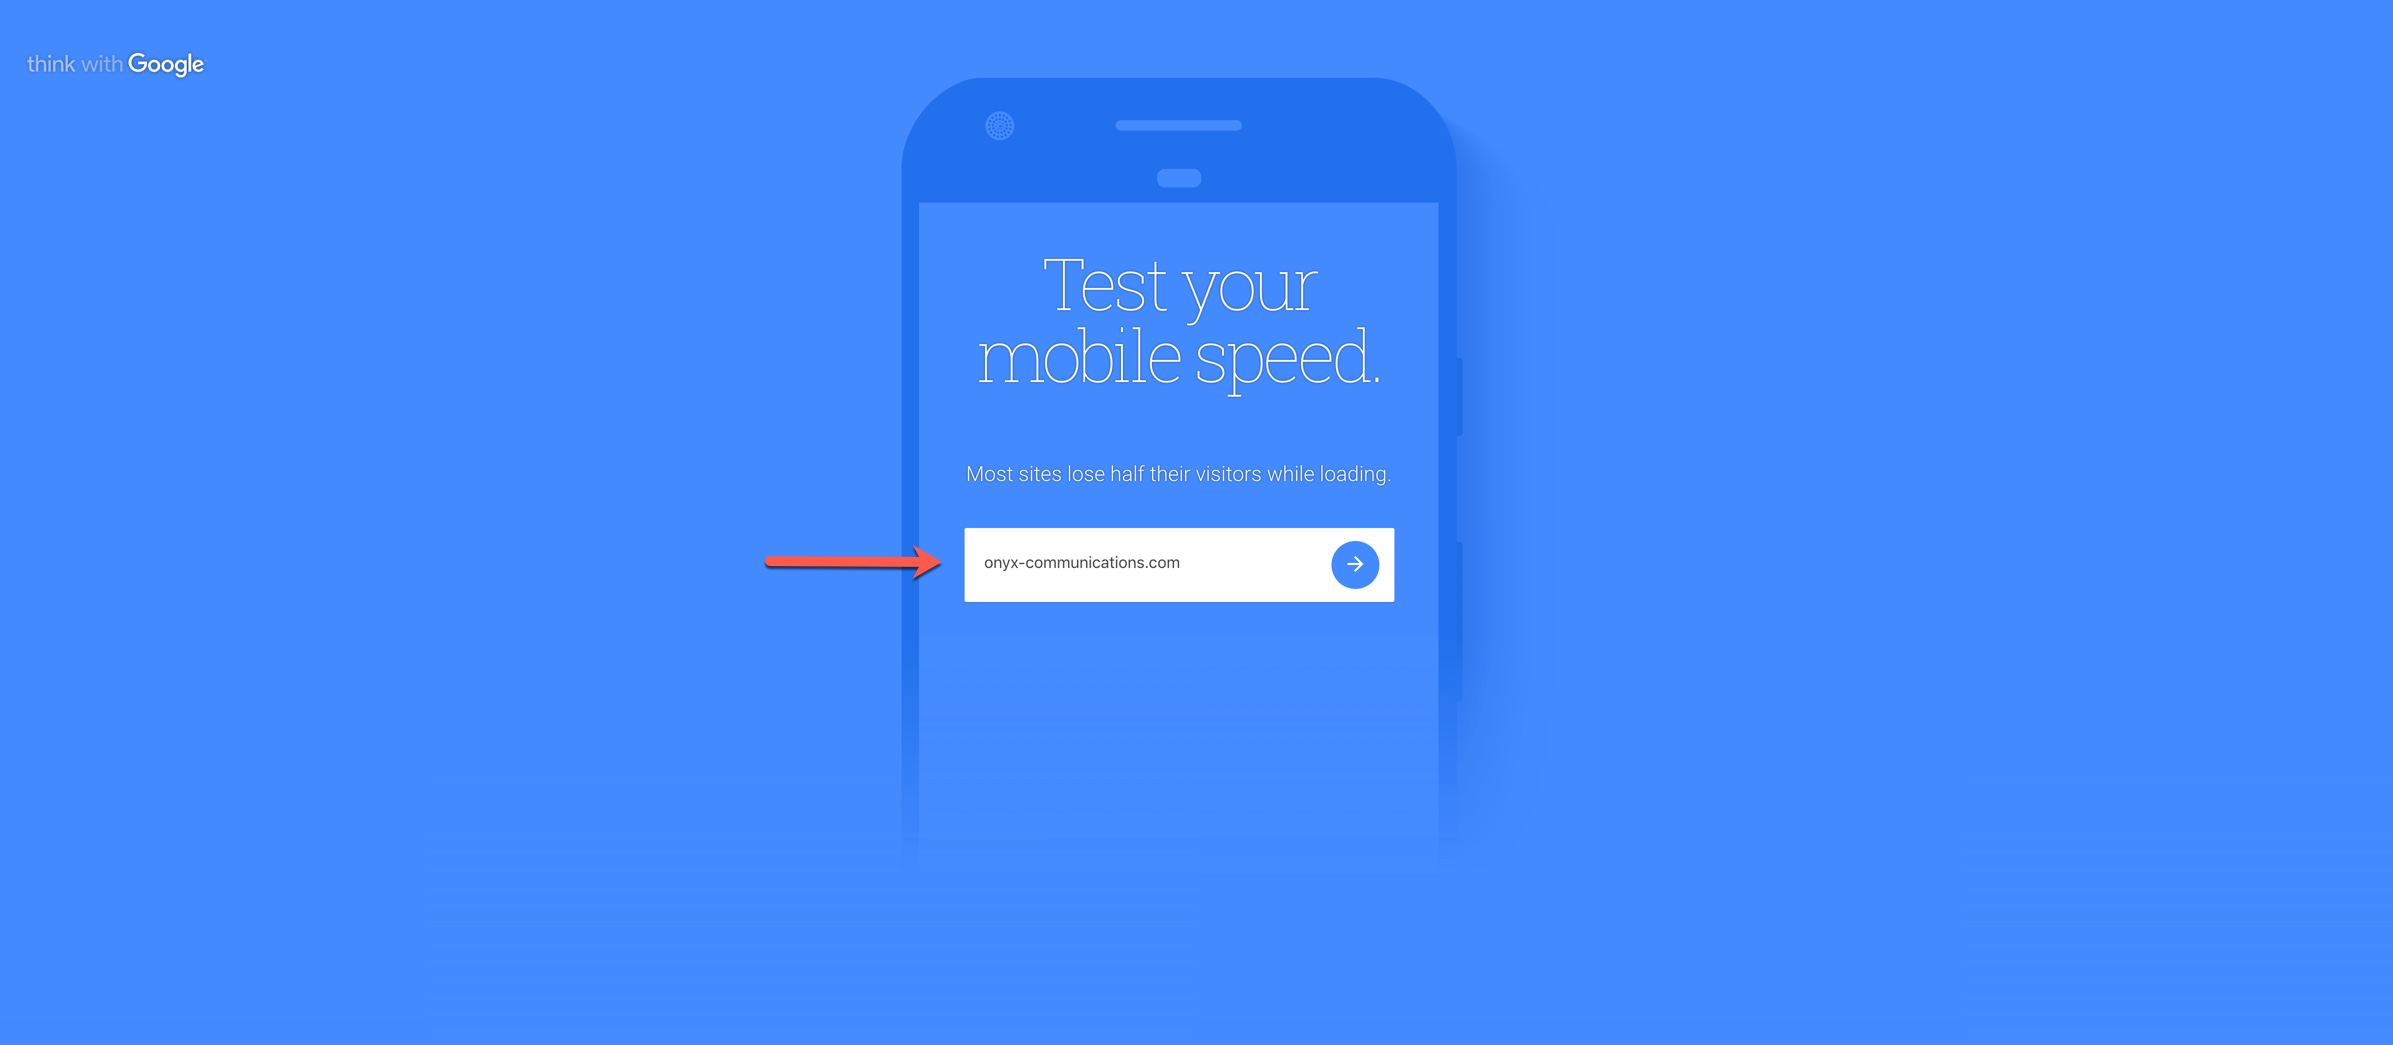 Test your mobile speed.jpg